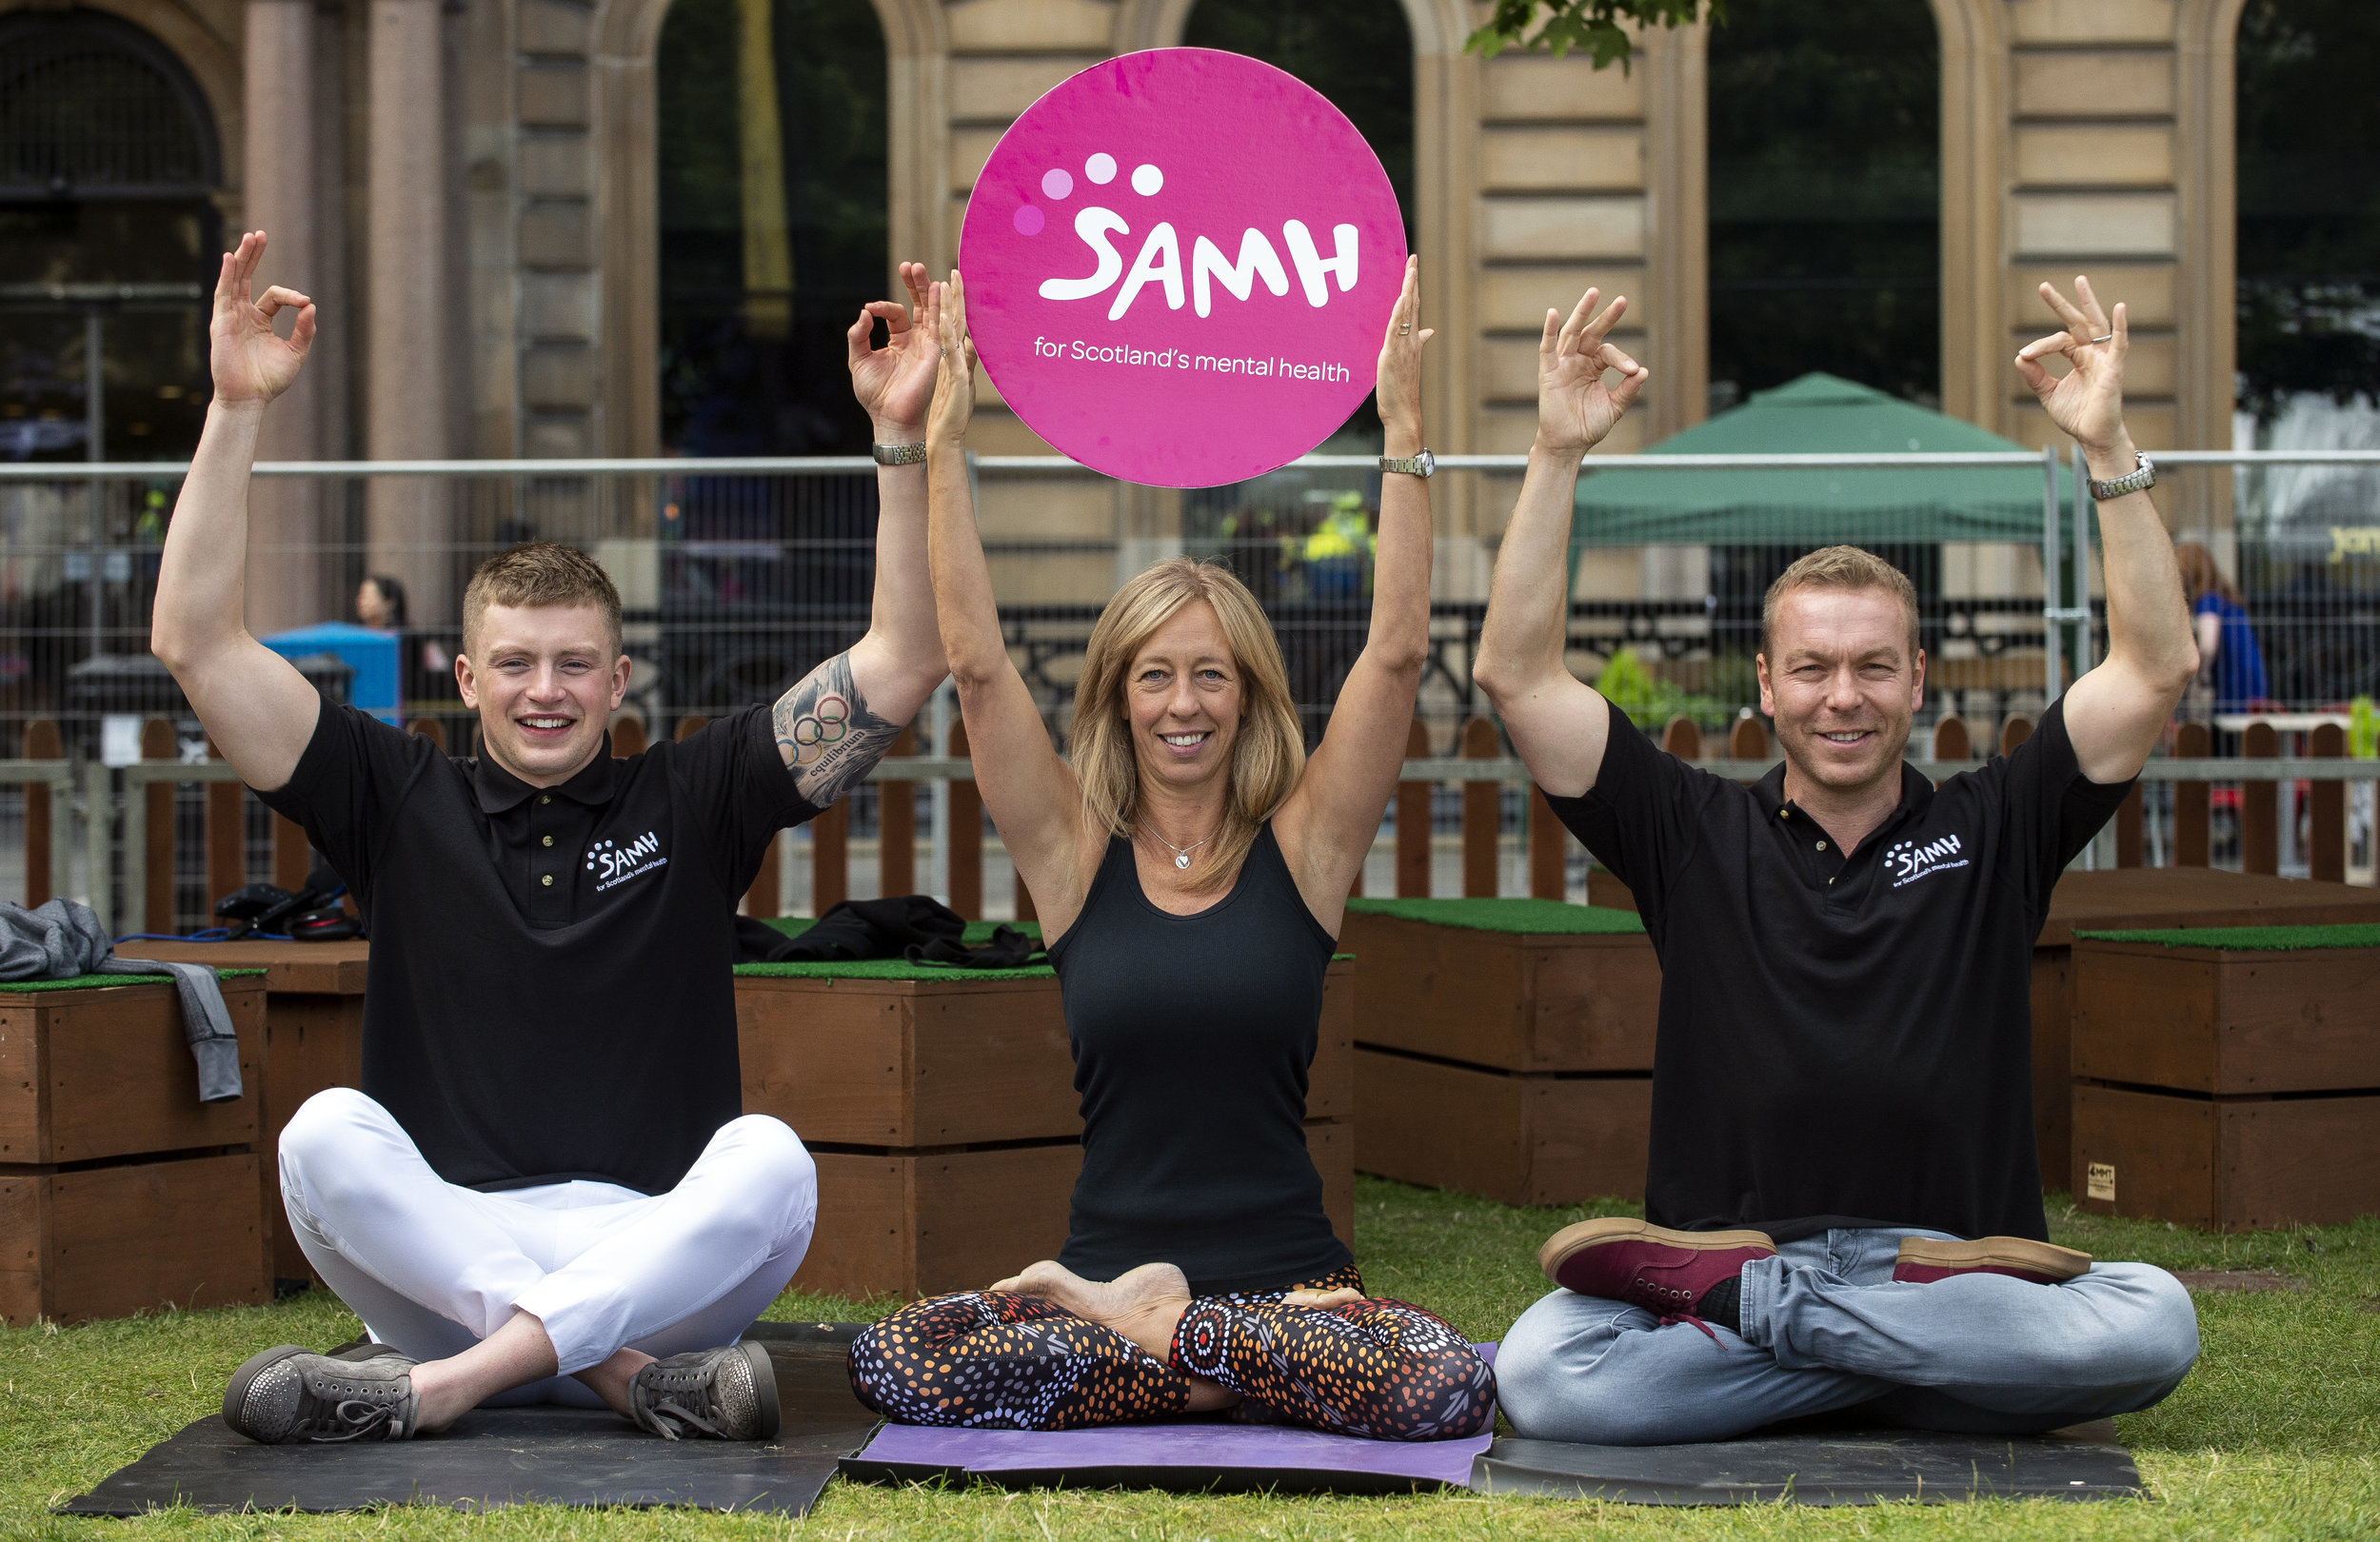 Adam Peaty, Emma Frame, Sir Chris Hoy olympians - supporting SAMH 2018 Mental Health Charter for Physical Activity & Sport